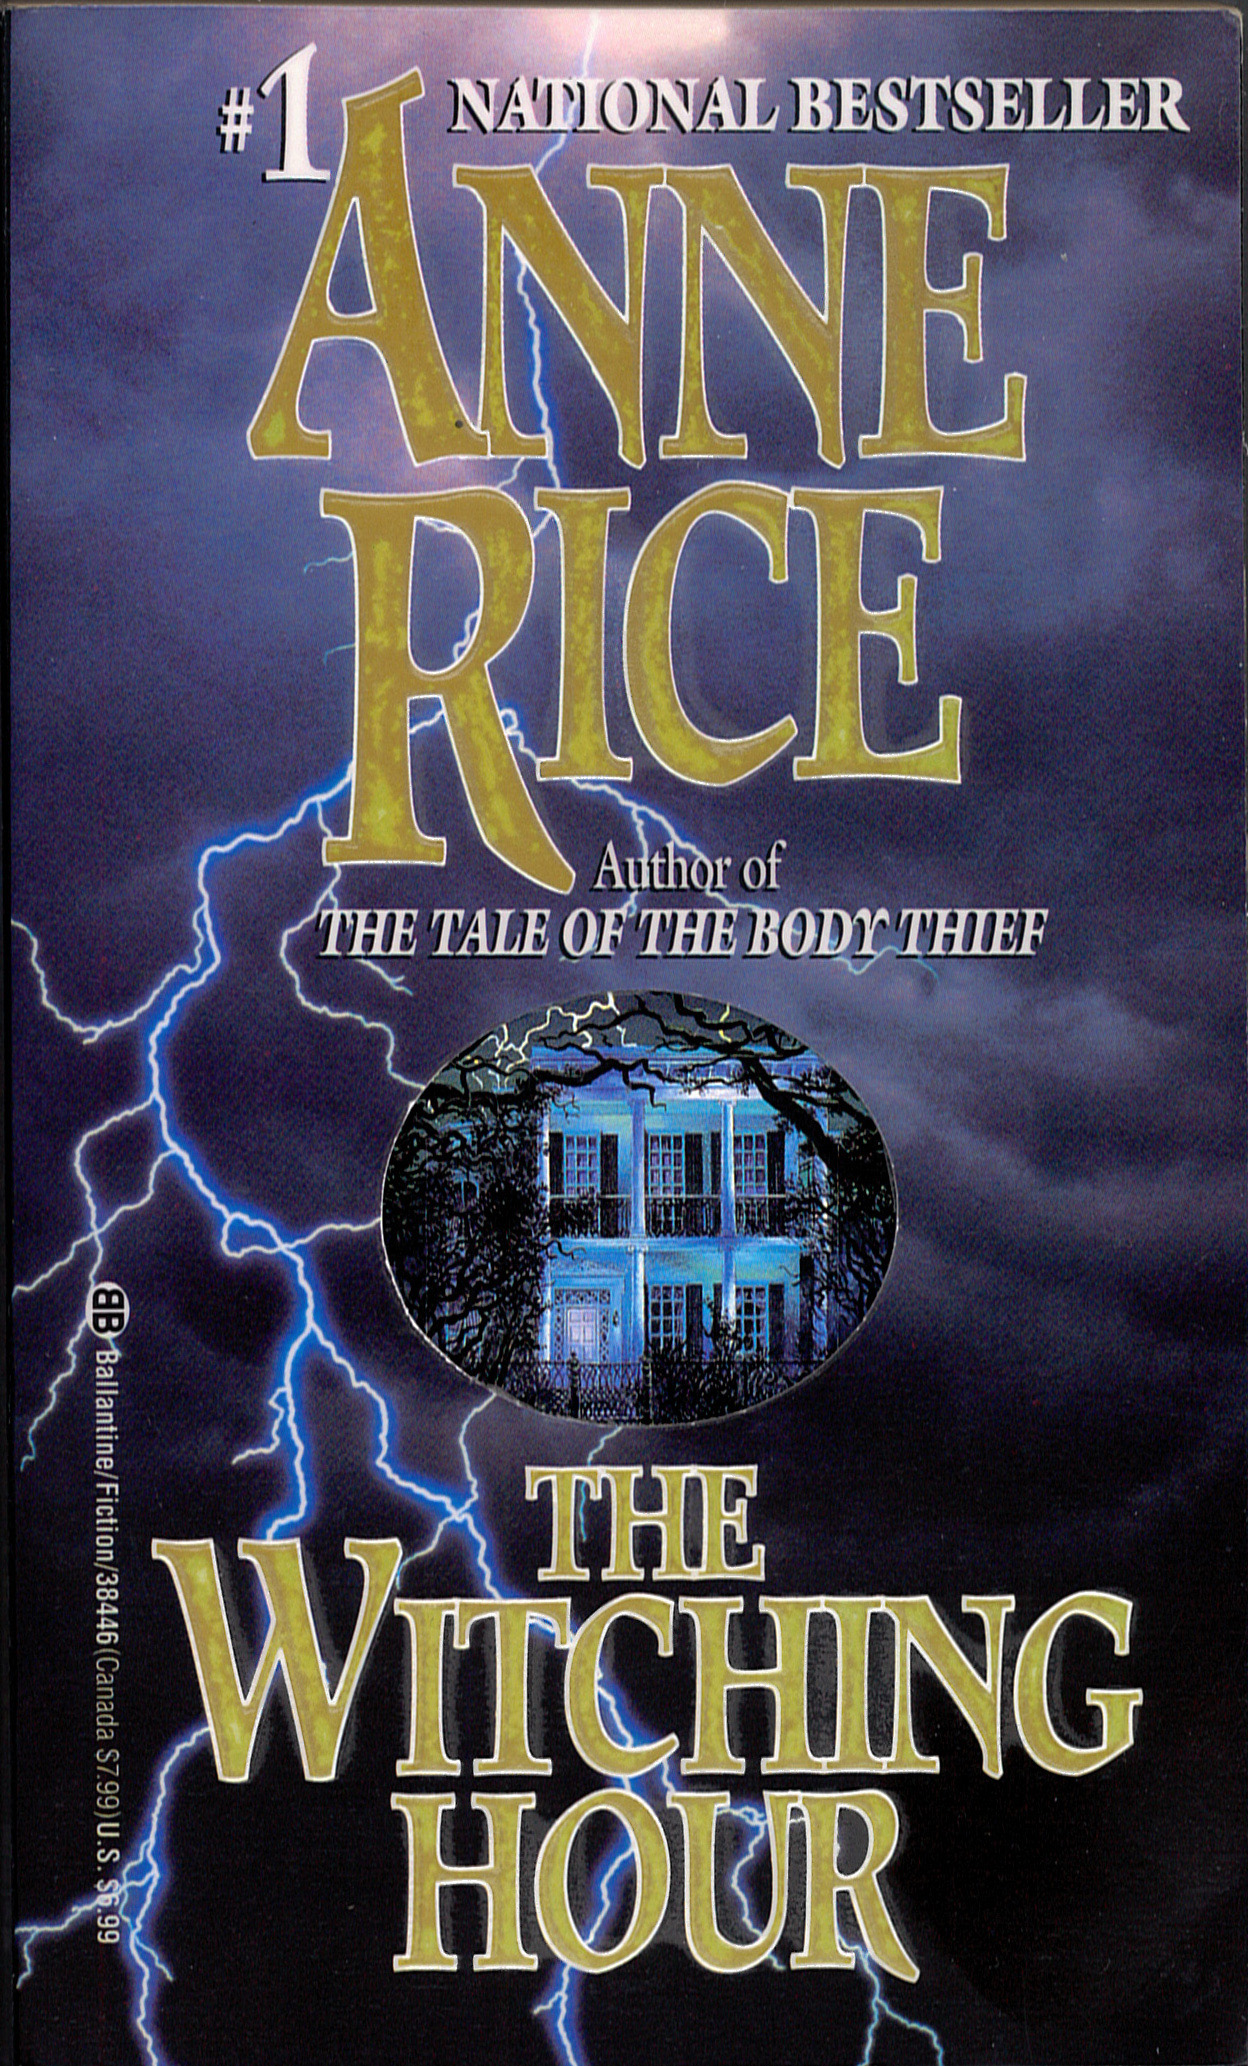 The witching movie